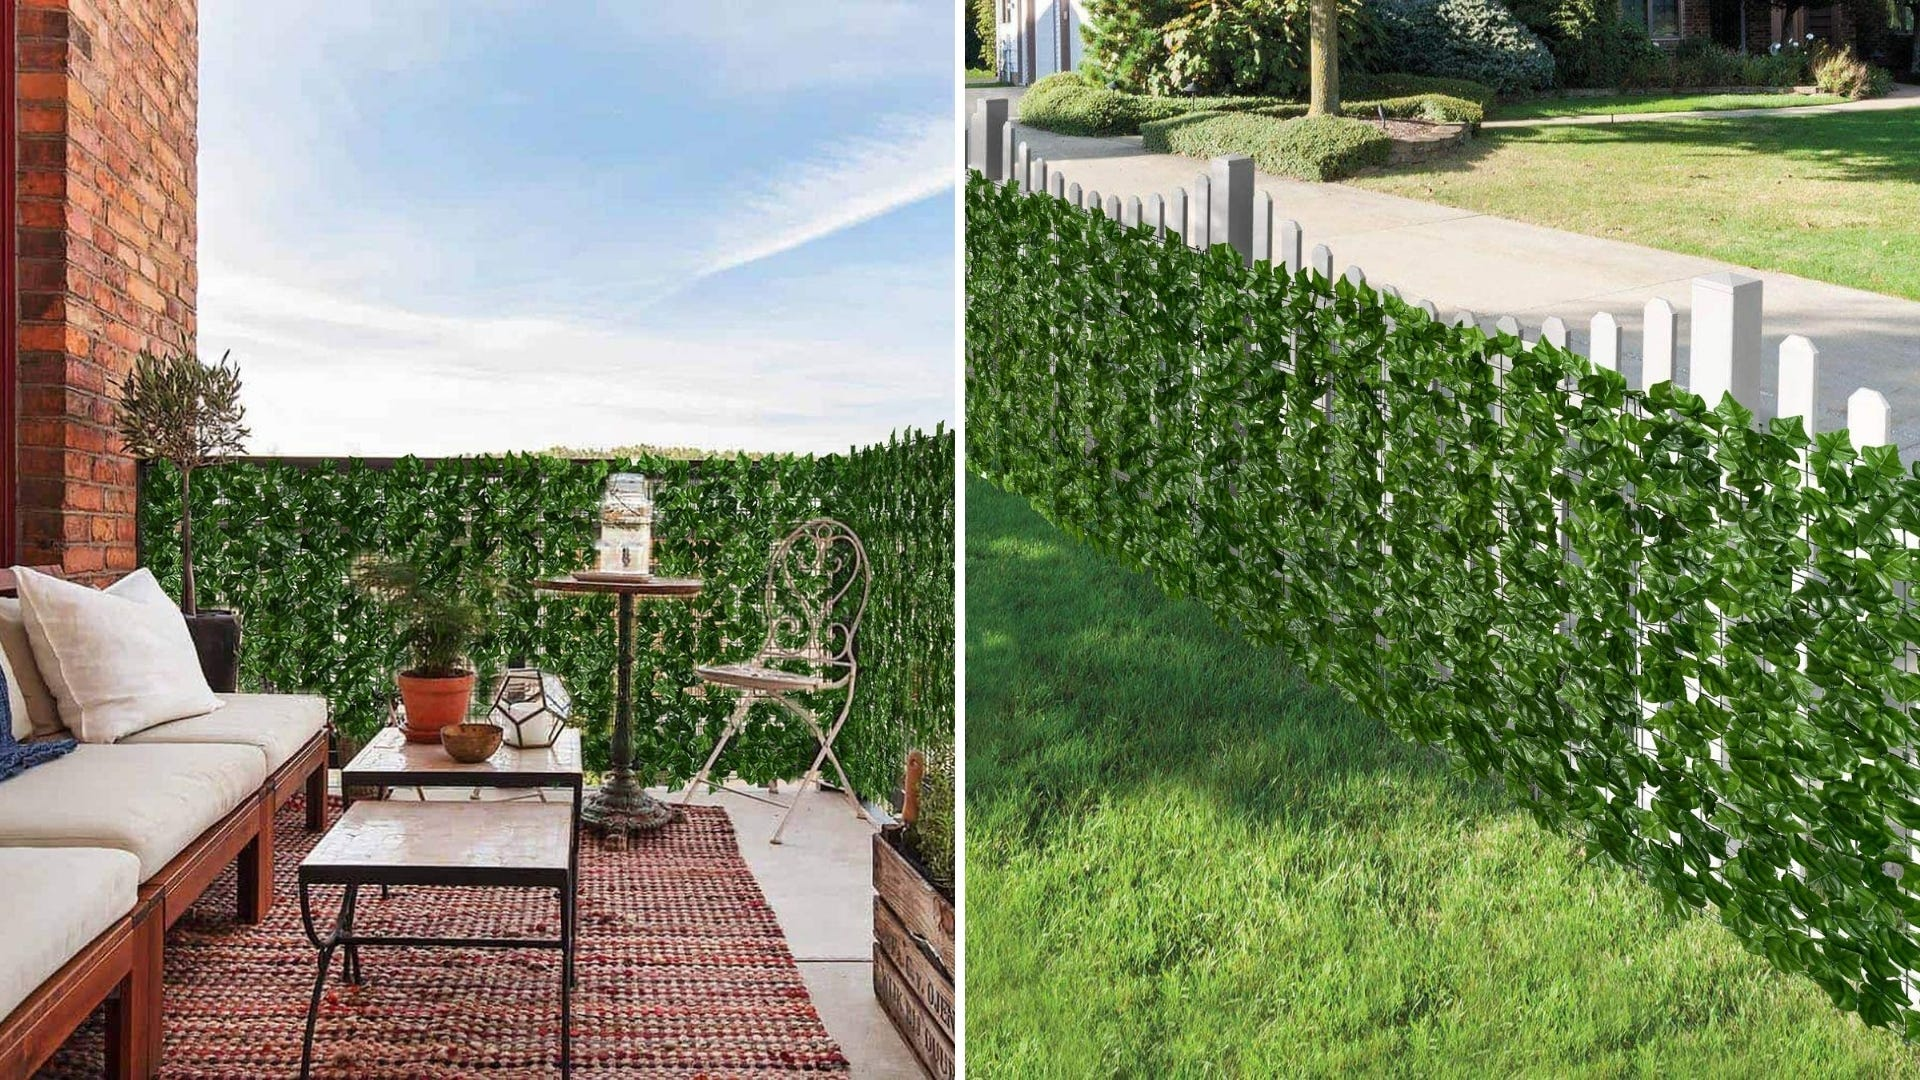 An apartment balcony with an artificial ivy screen on the railing and an ivy screen on a fence.